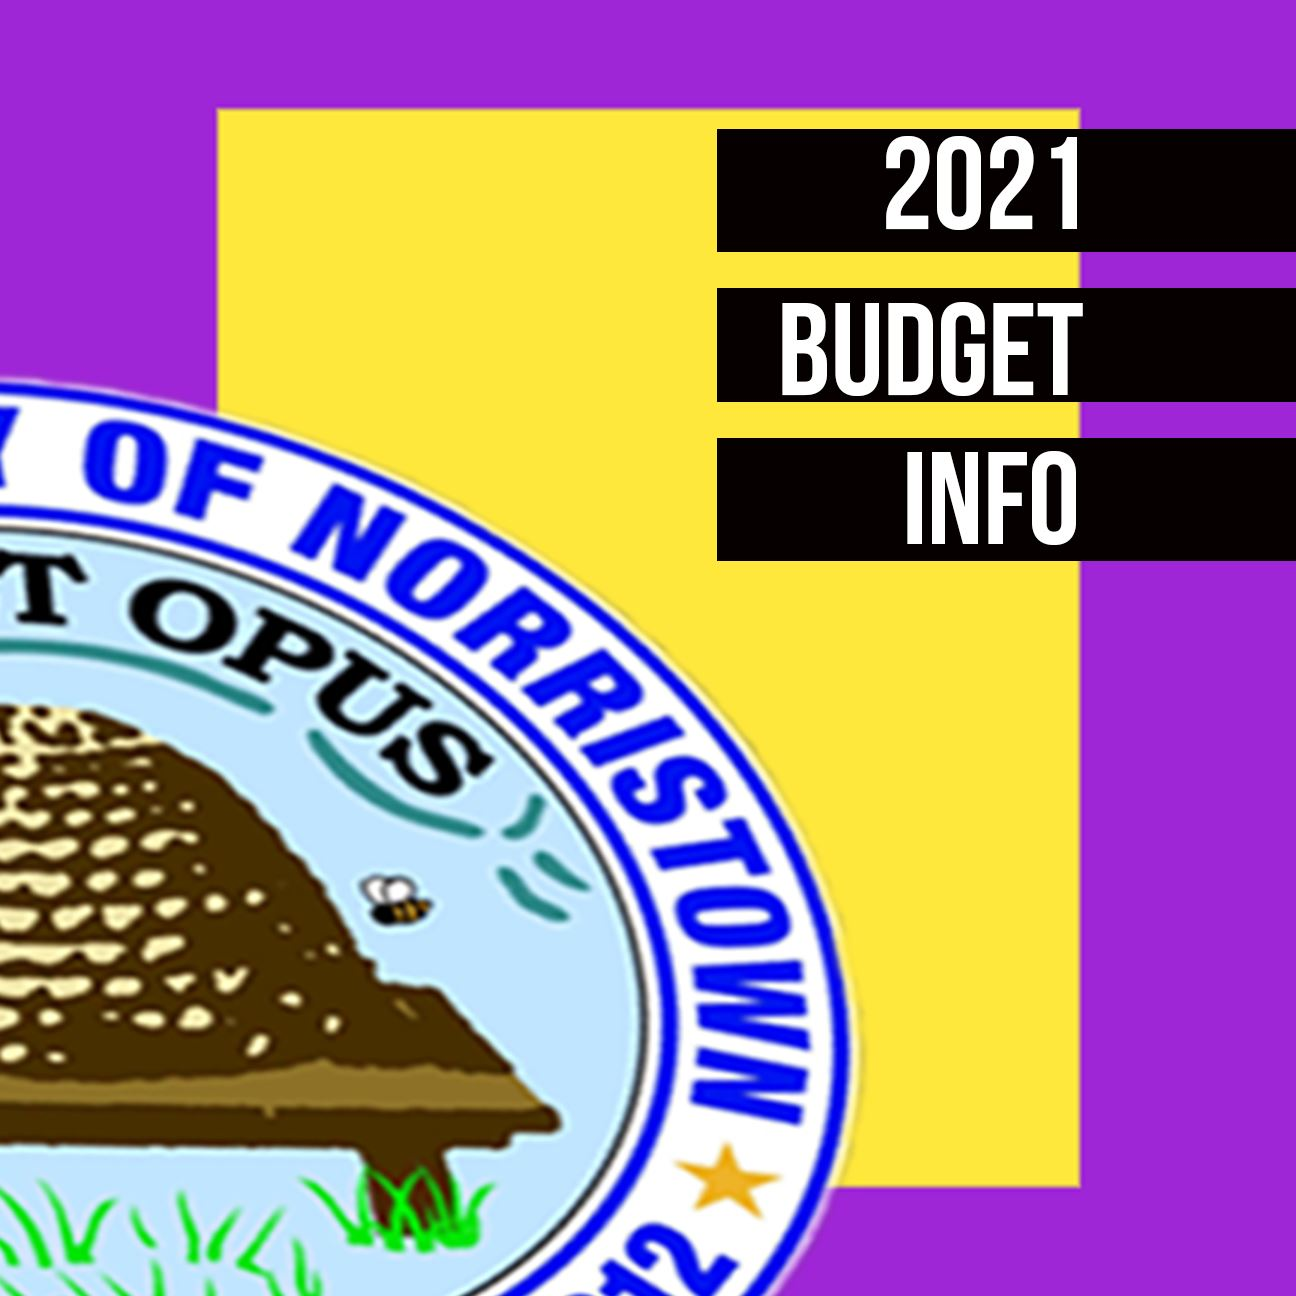 Budget info picture